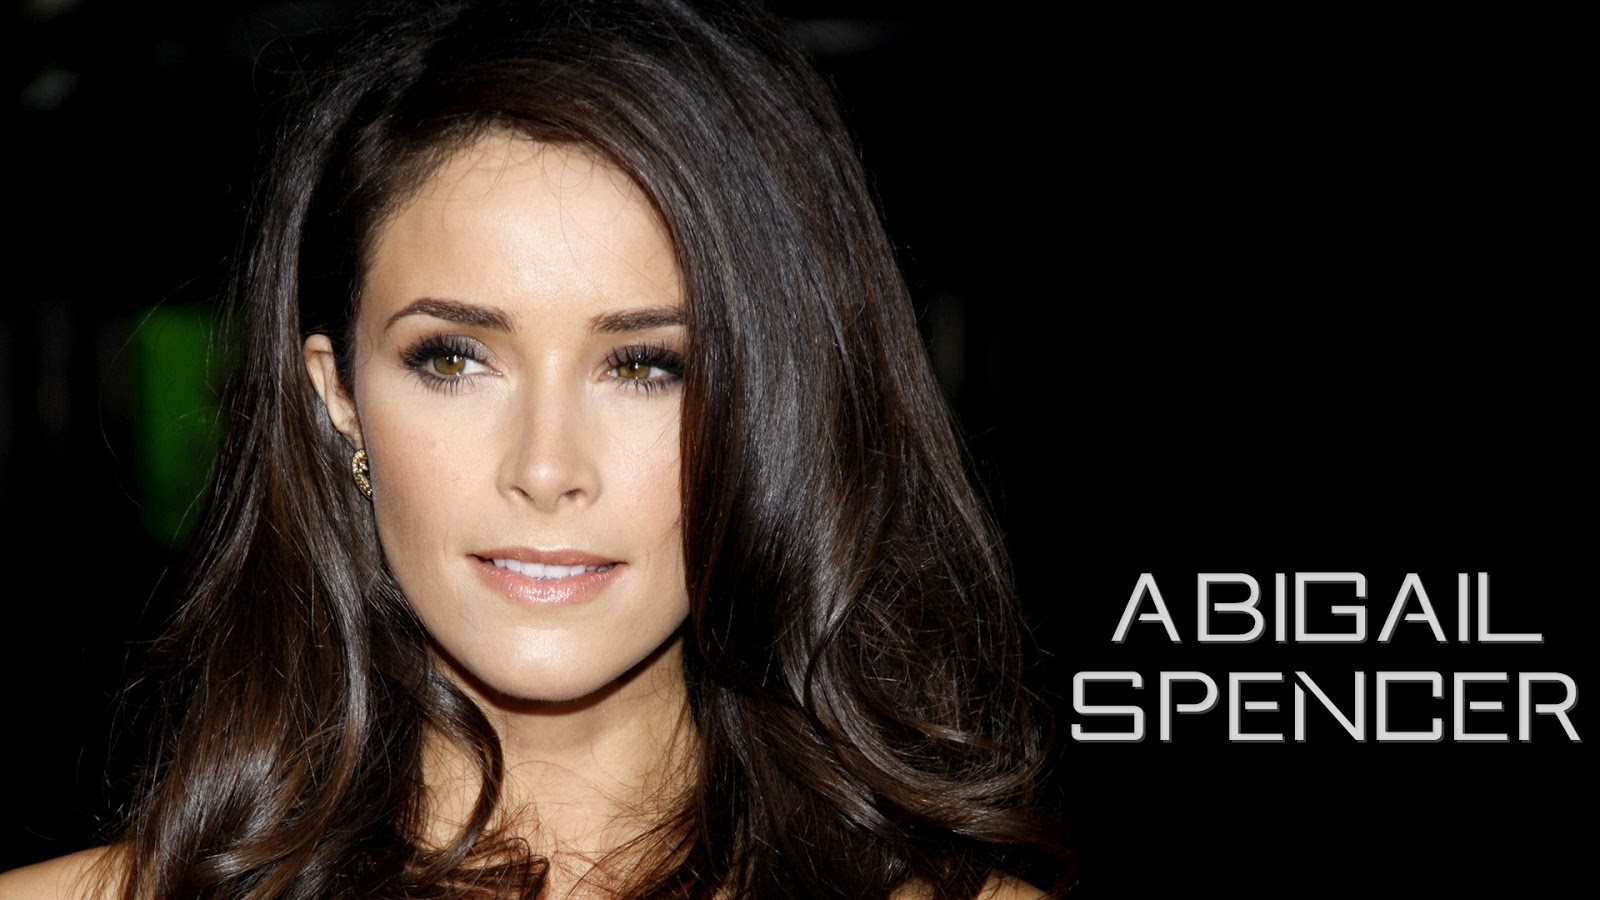 1600x900 - Abigail Spencer Wallpapers 20